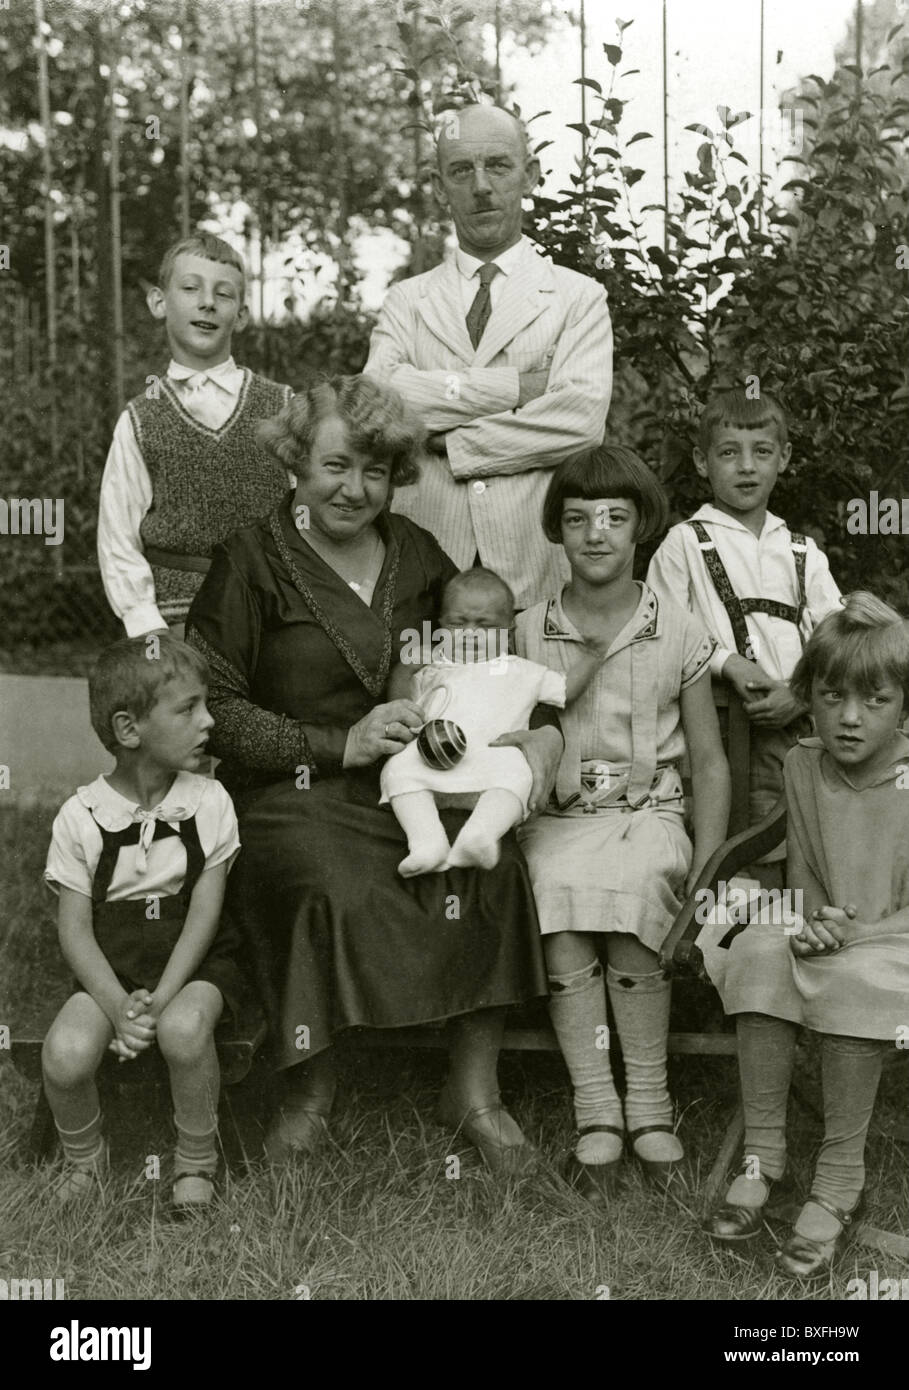 people, families, family with many children, group picture, Germany, circa 1925, Additional-Rights-Clearences-NA - Stock Image